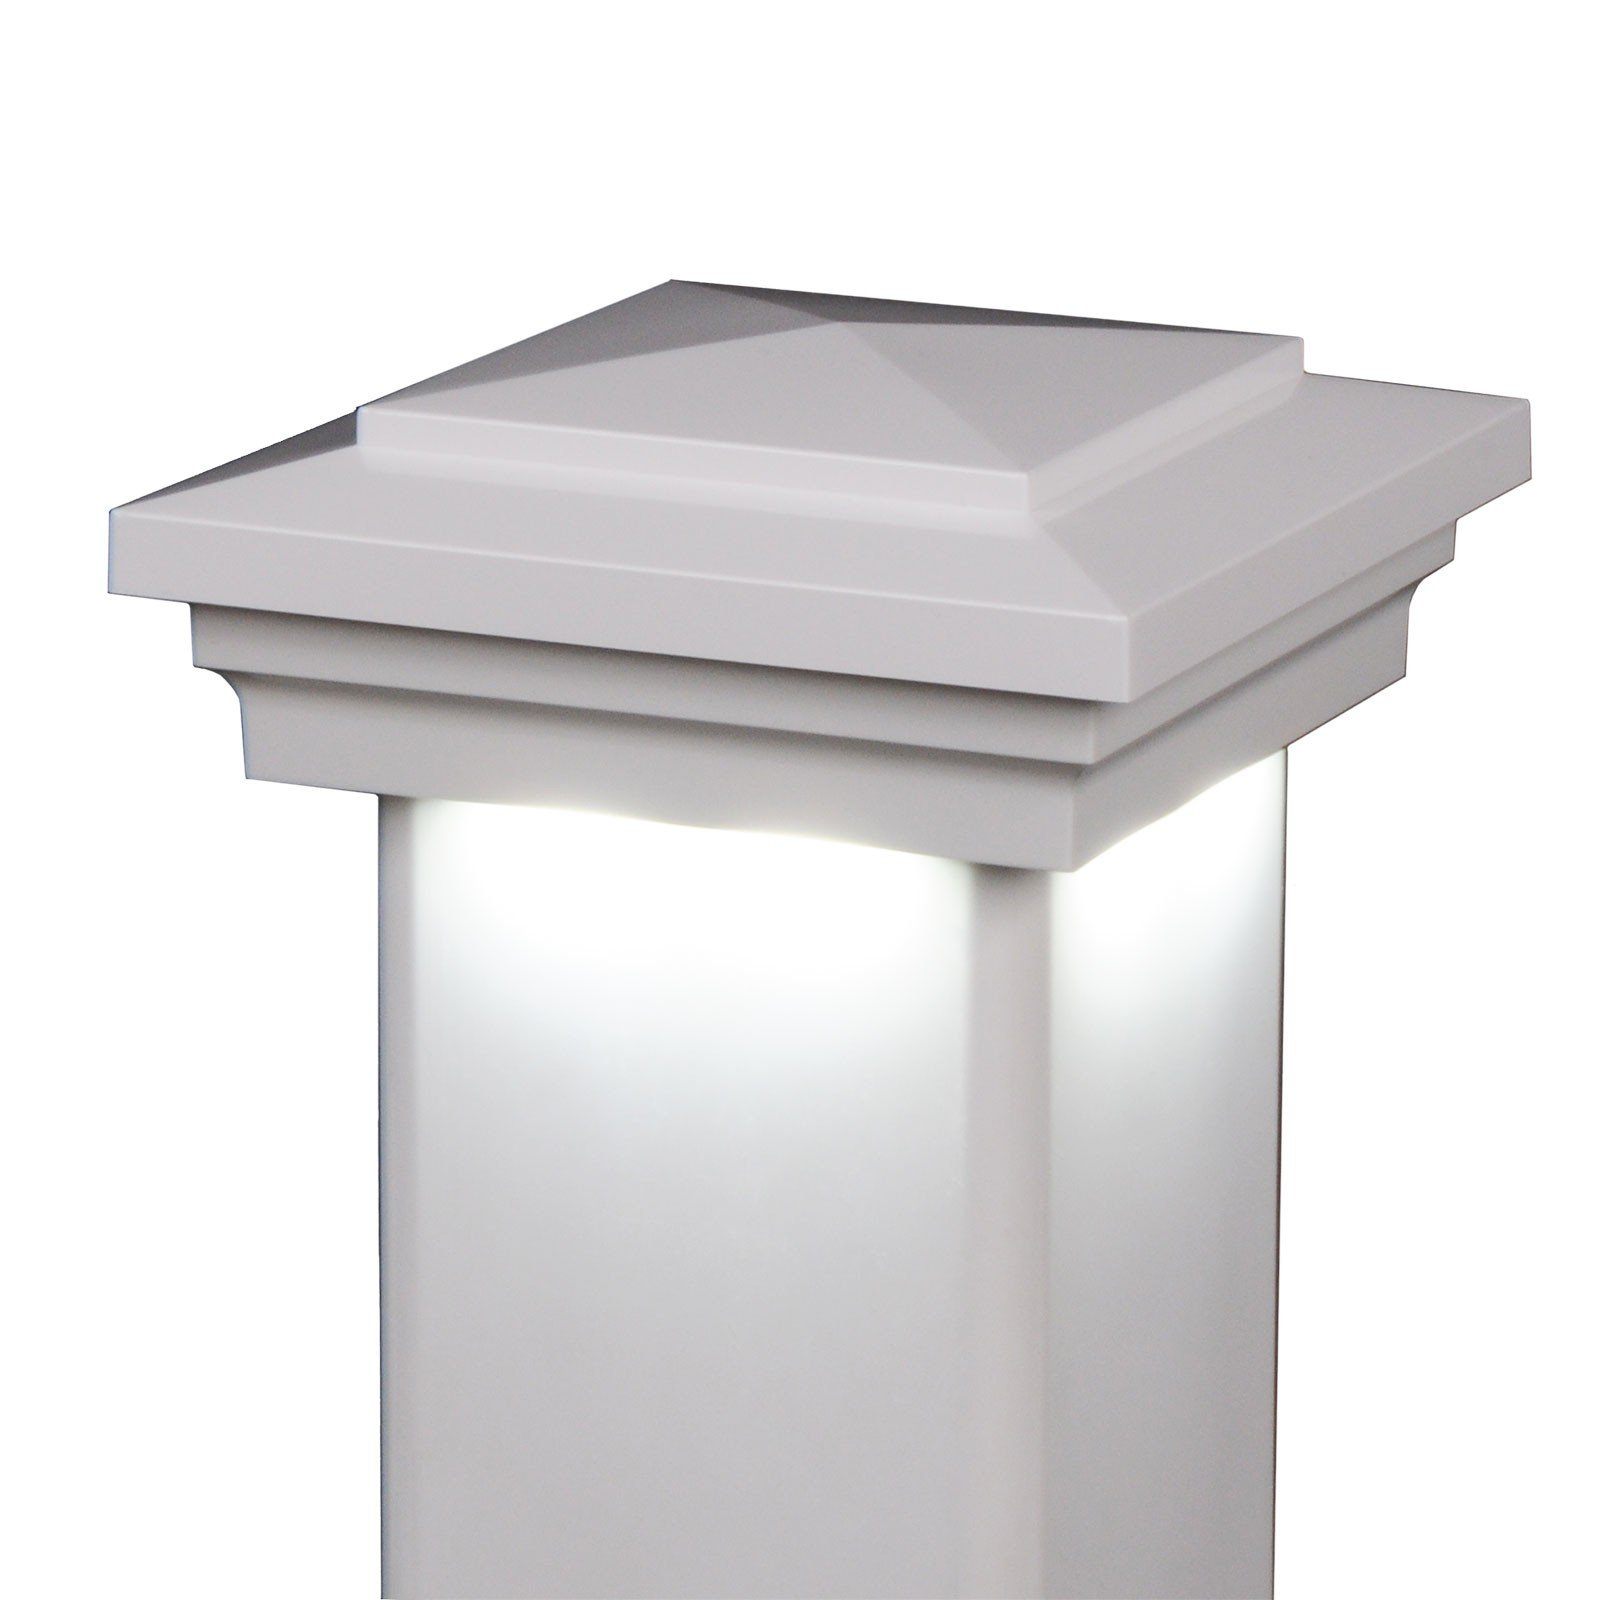 America's Fence Store 4'' x 4'' White Cape May Downward Low Voltage LED Light Post Cap - 6 Pack by LMT Mercer Group, Inc